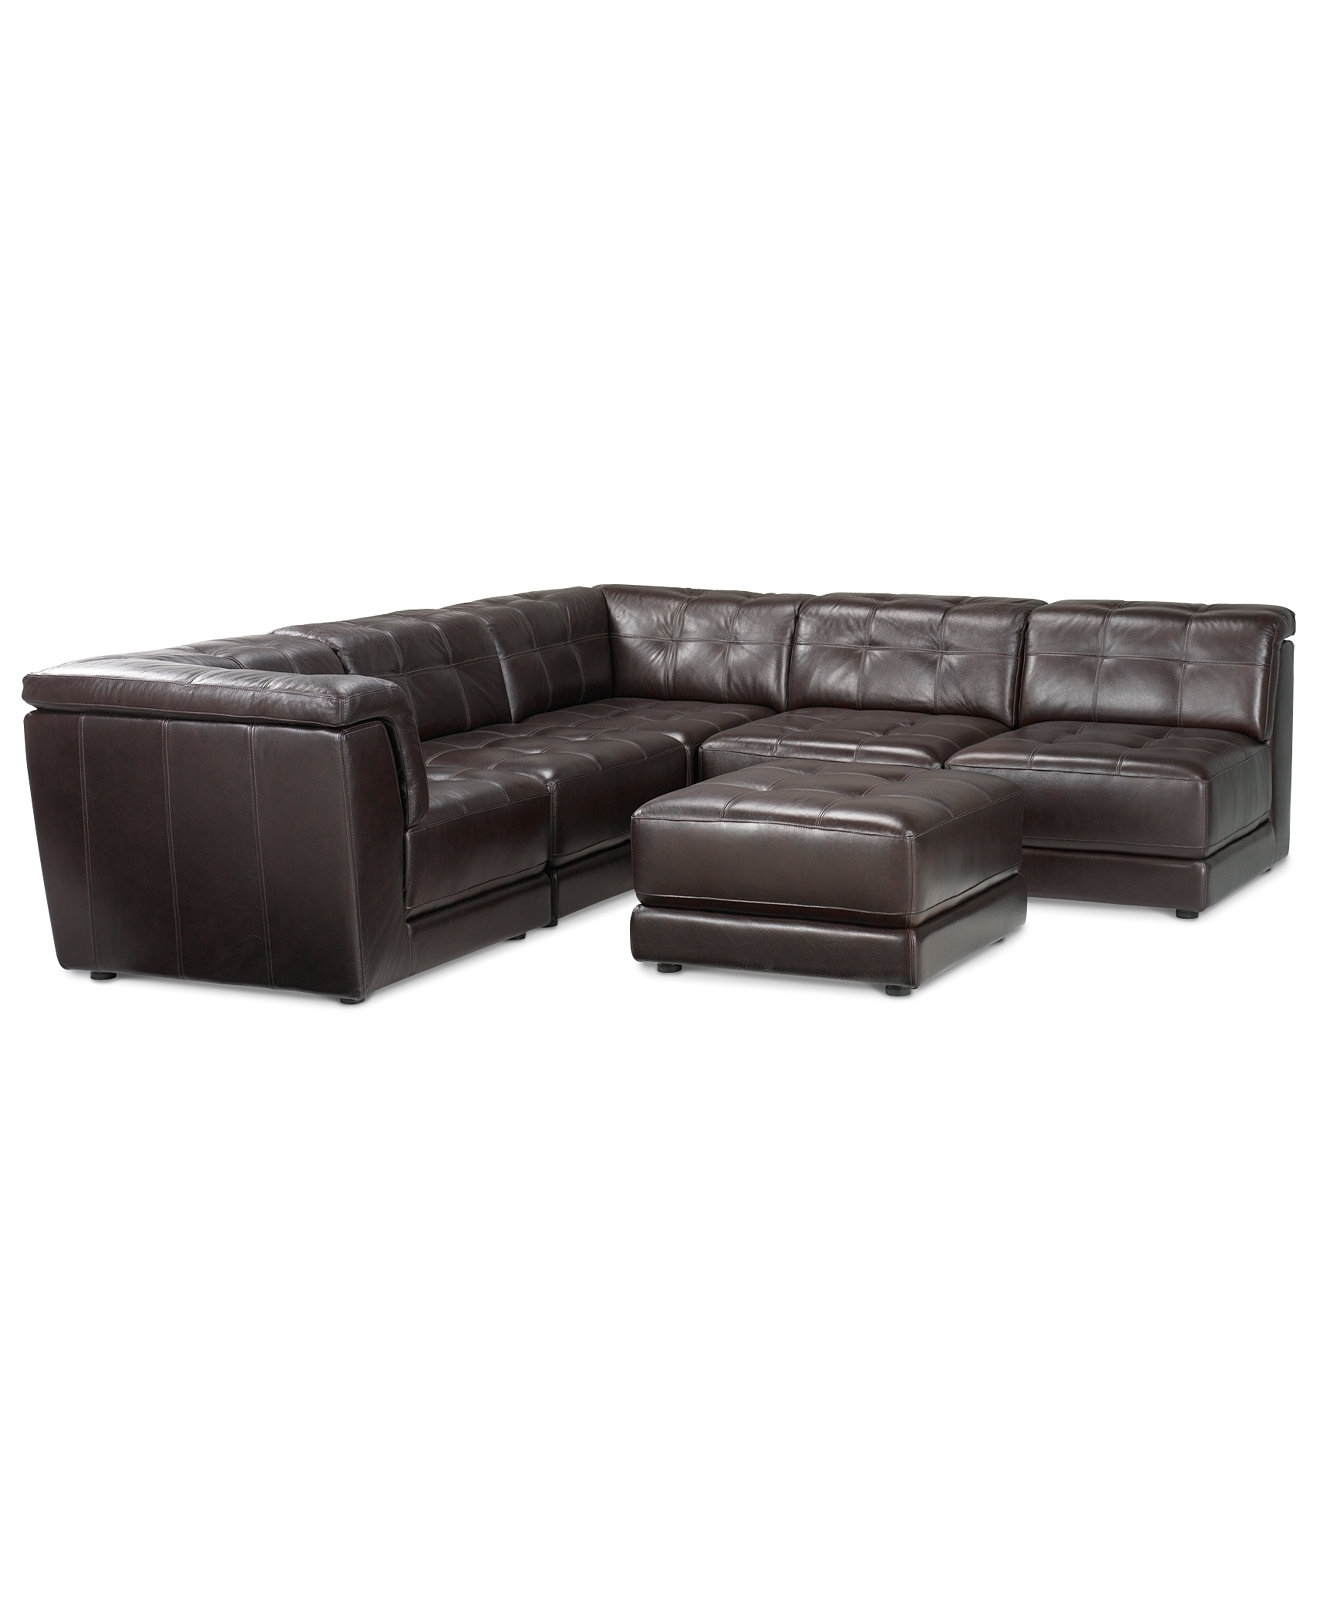 Stacey Leather 6 Piece Modular Sectional Sofa (3 Armless Chairs, 2 Within Preferred 6 Piece Leather Sectional Sofas (View 13 of 15)